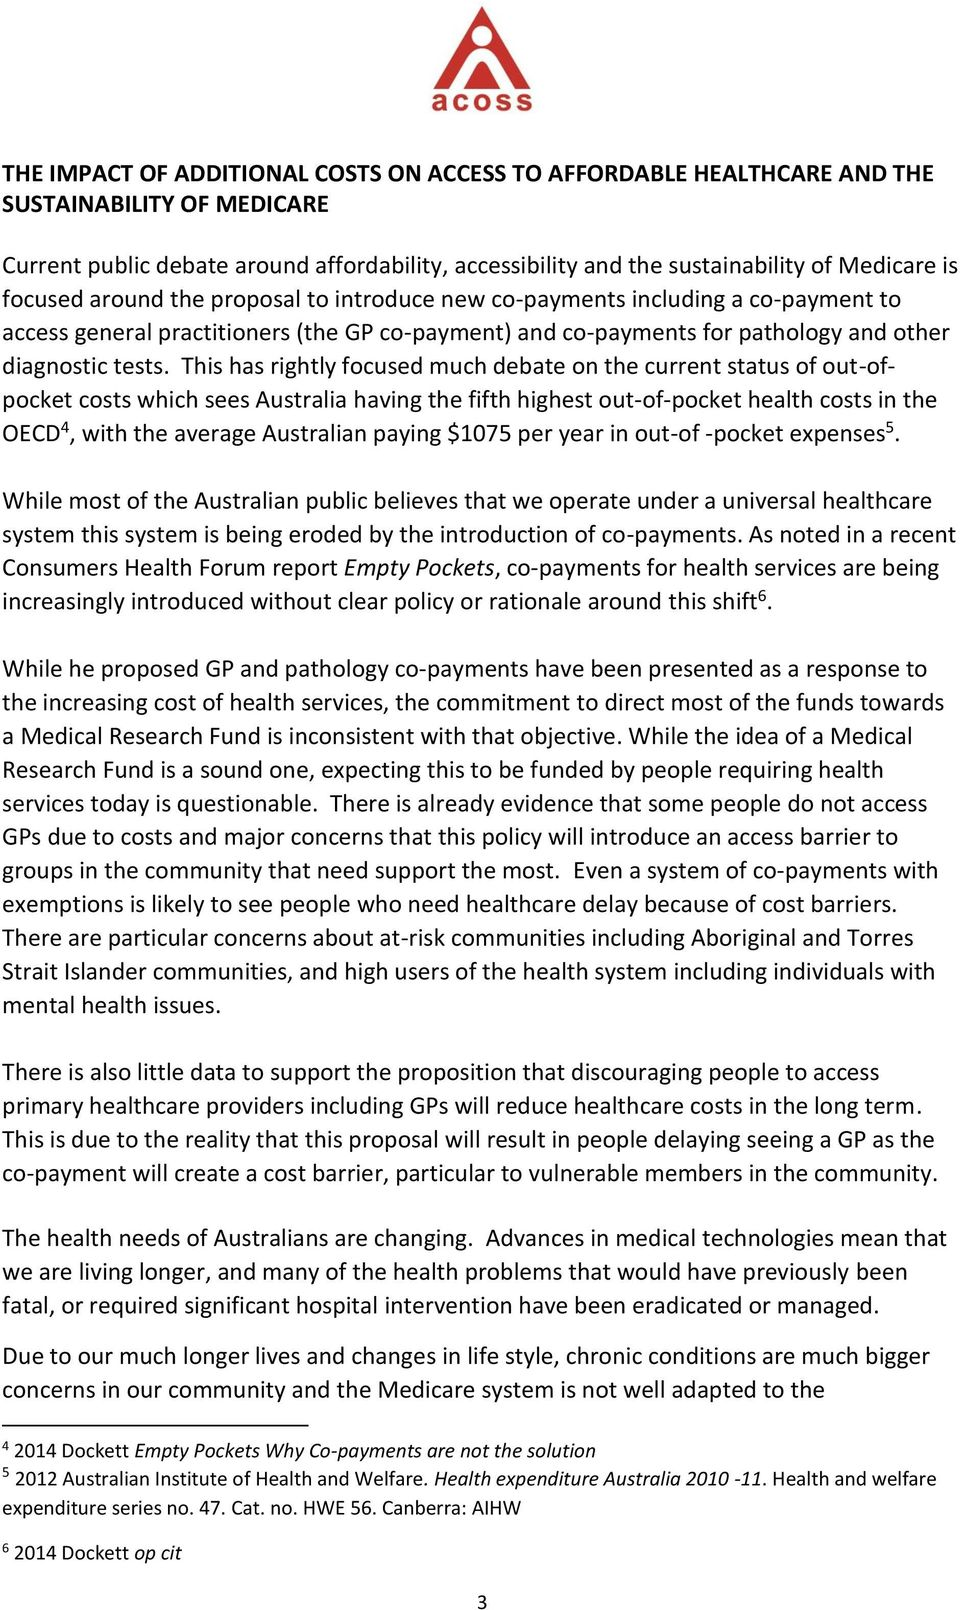 This has rightly focused much debate on the current status of out-ofpocket costs which sees Australia having the fifth highest out-of-pocket health costs in the OECD 4, with the average Australian